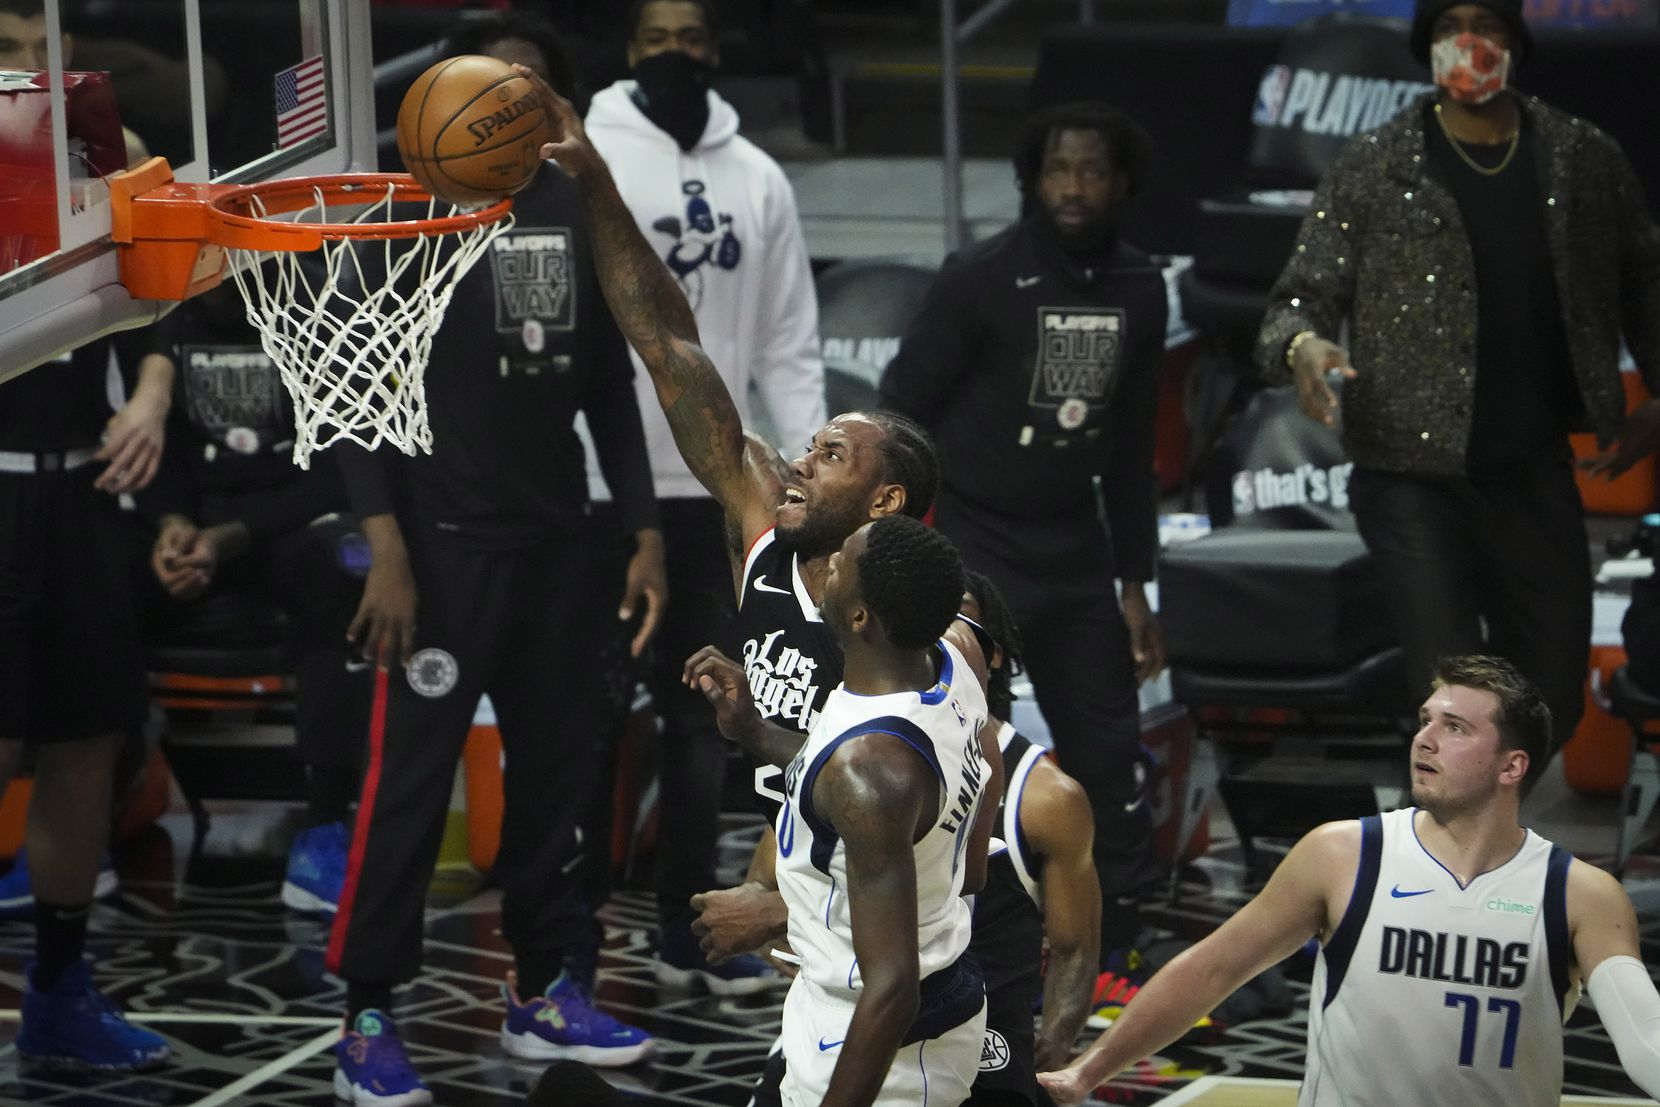 LA Clippers forward Kawhi Leonard (2) dunks the ball past Dallas Mavericks forward Dorian Finney-Smith (10) and guard Luka Doncic (77) during the first quarter of Game 7 of an NBA playoff series at the Staples Center on Sunday, June 6, 2021, in Los Angeles.